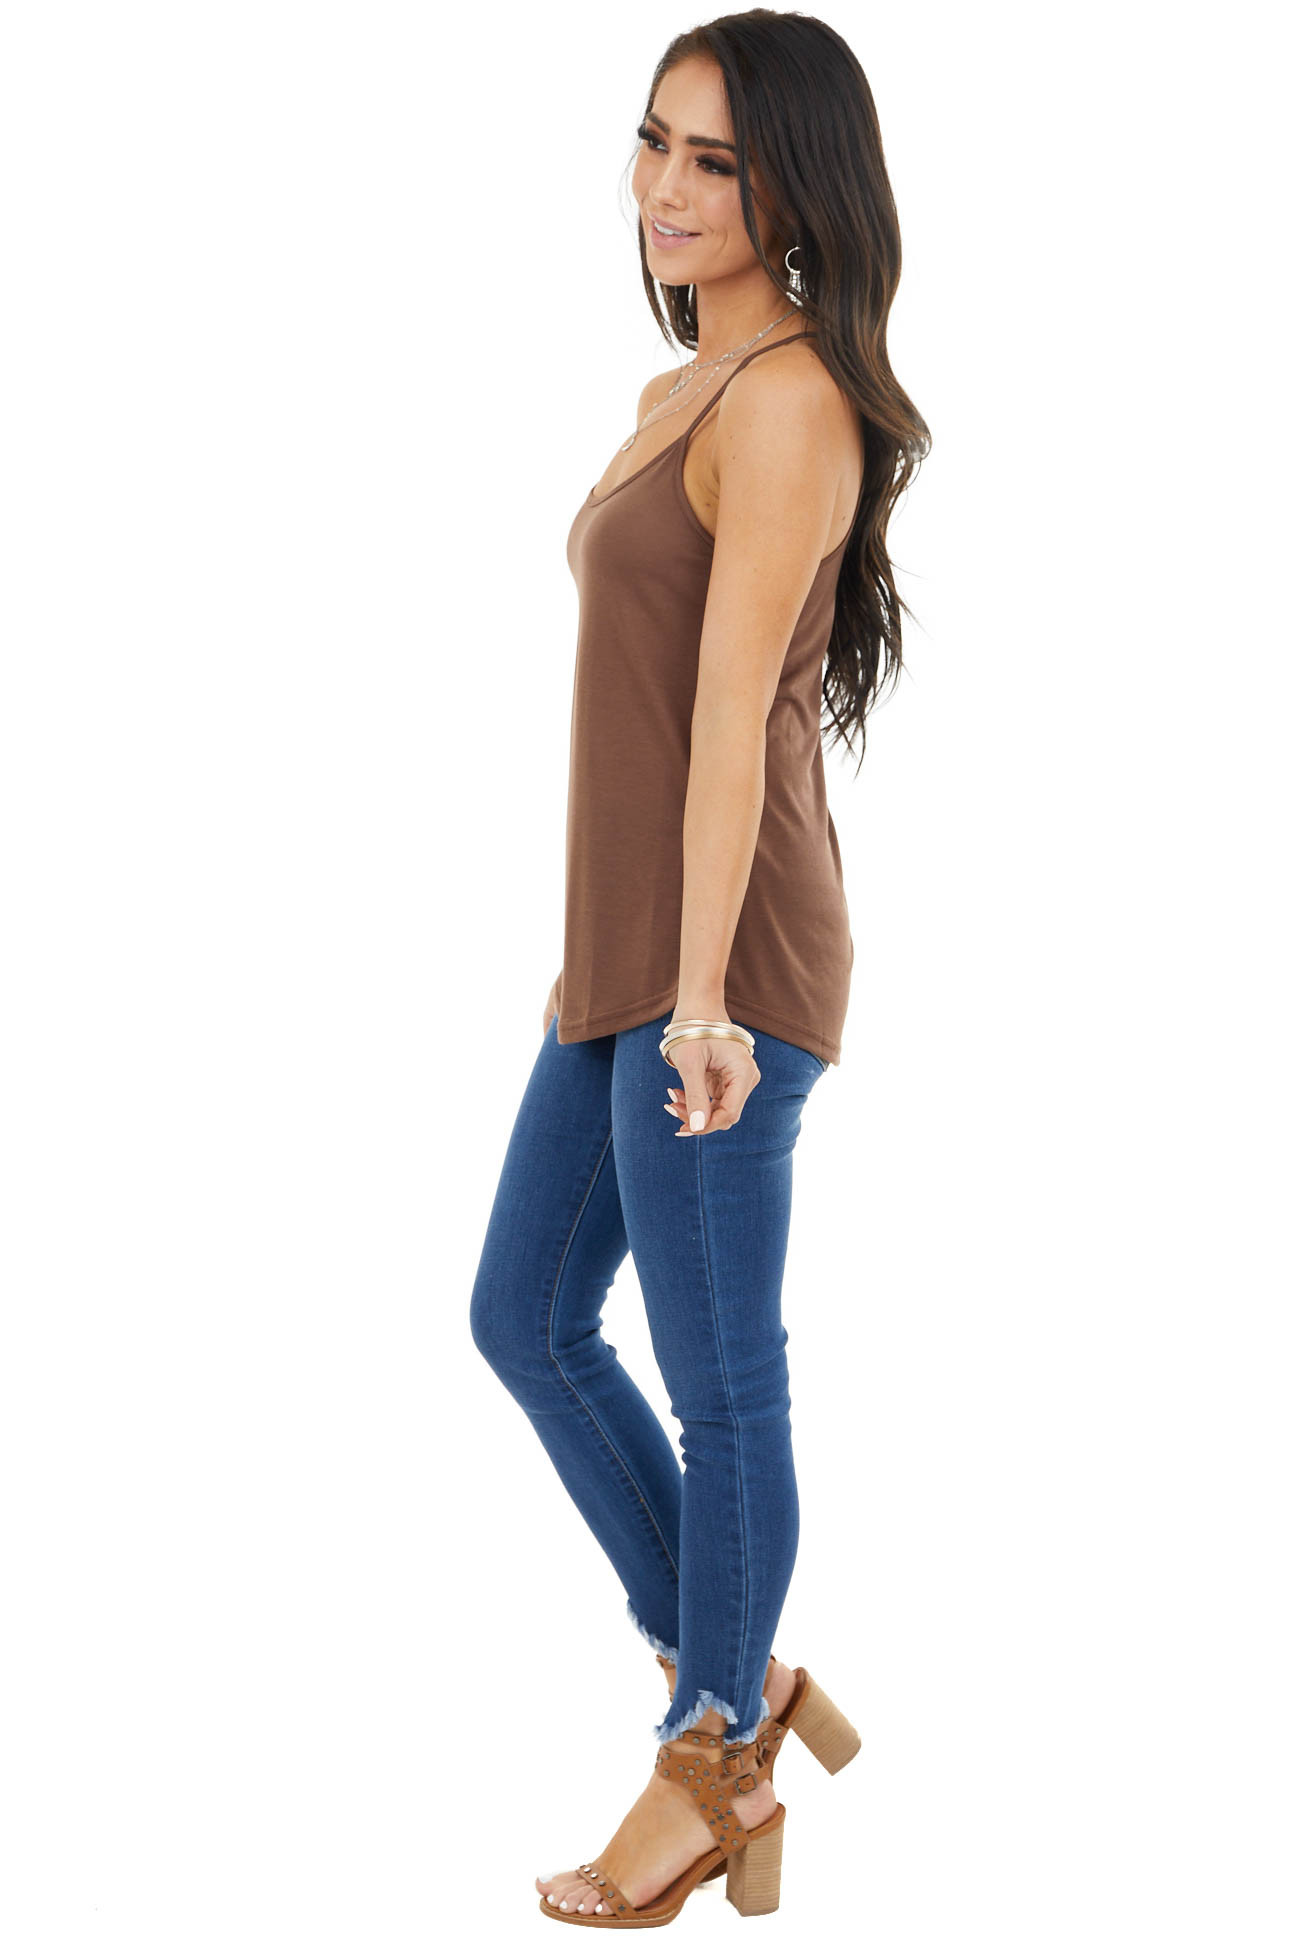 Walnut Racerback Cami with Rounded Hemline and Neckline